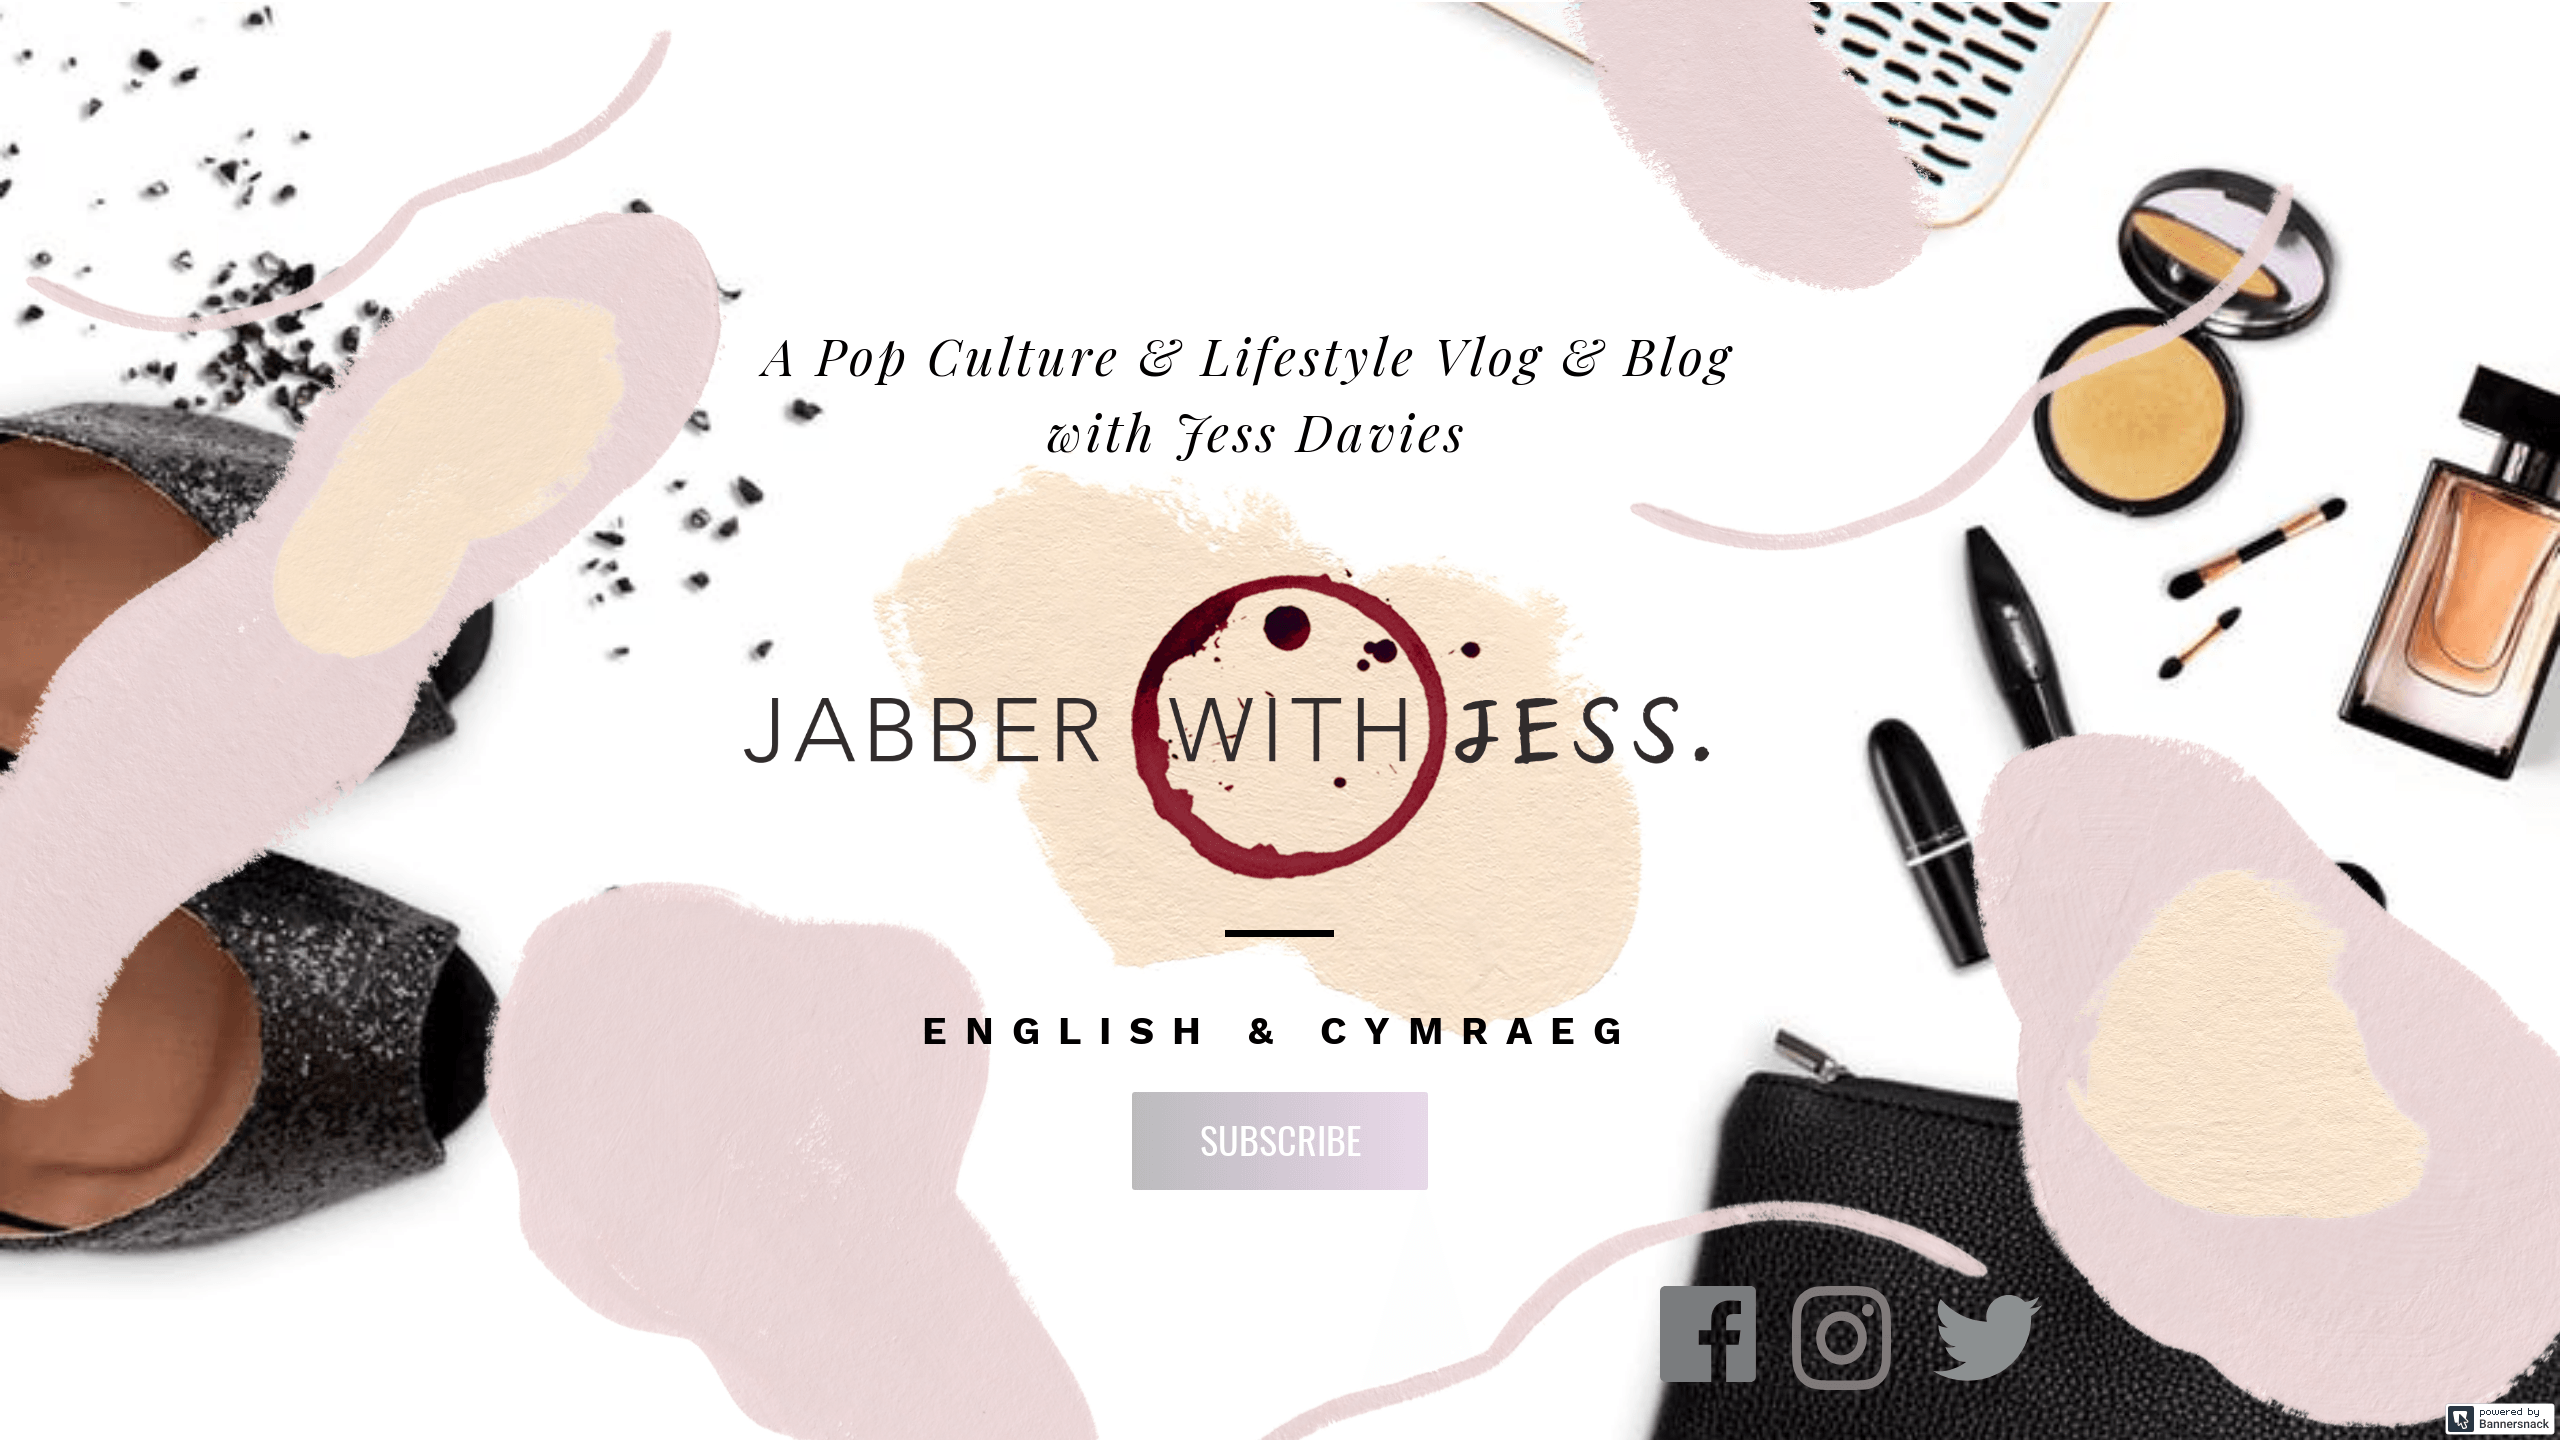 Jabber With Jess : A pop culture and lifestyle vlog & blog with Jess Davies